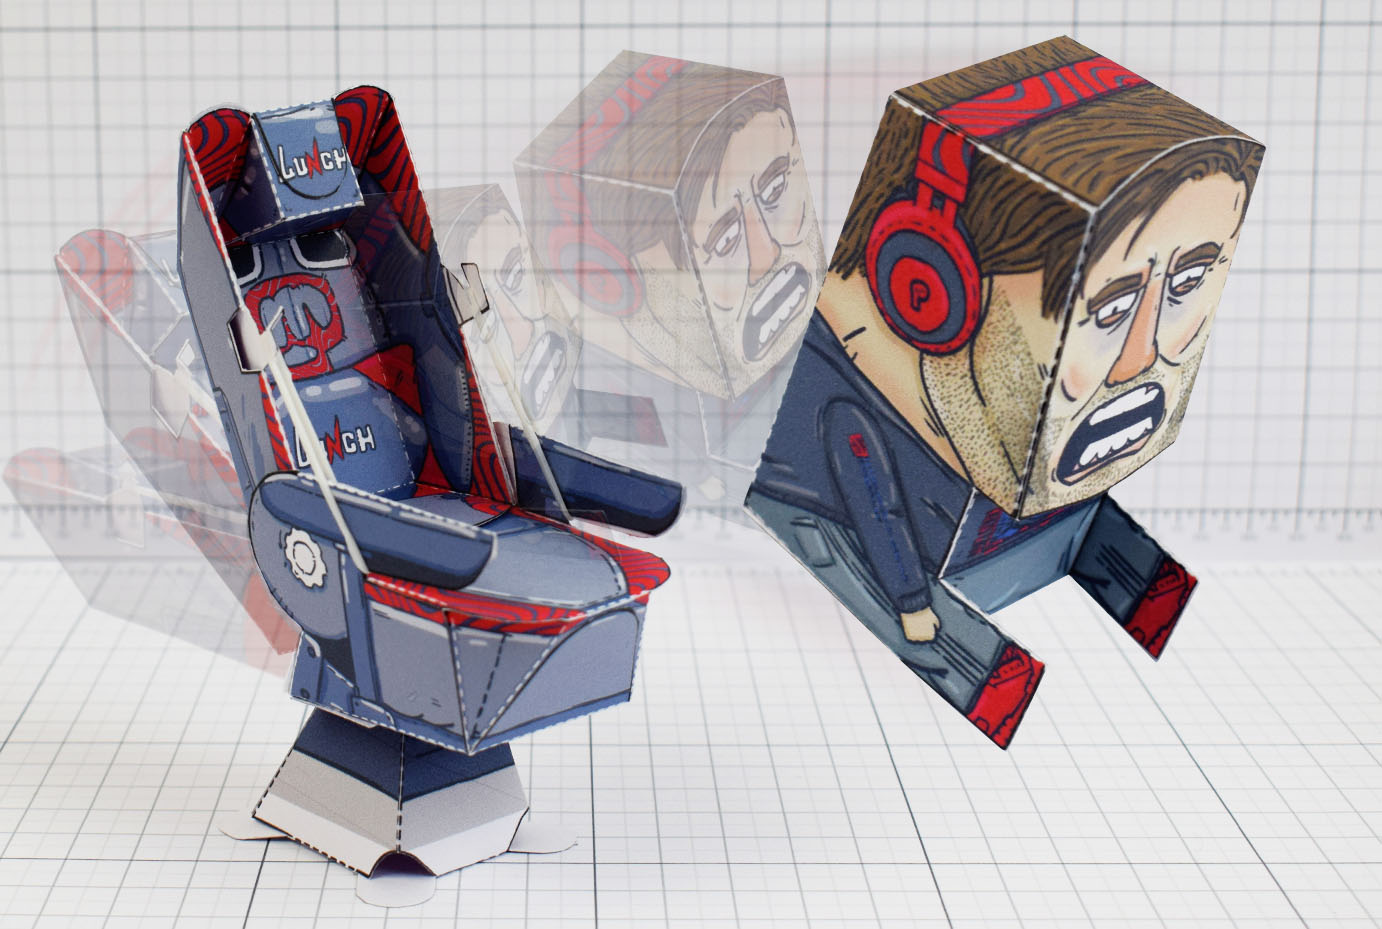 PTI - Pewdiepie Chair Launcher Paper Toy Craft Texture - Image Inaction2